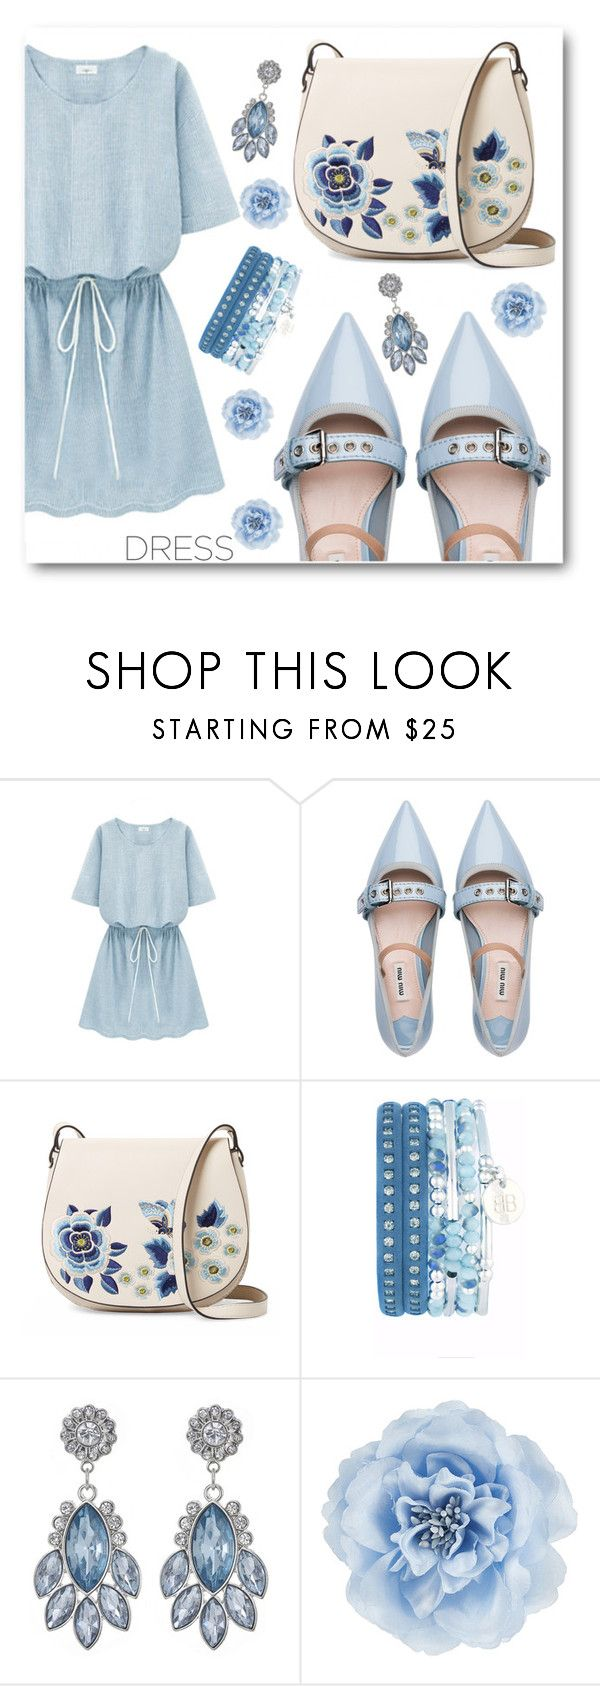 """""""Dress"""" by angelstar92 on Polyvore featuring Miu Miu, French Connection, Monsoon, dress and dreamydresses"""